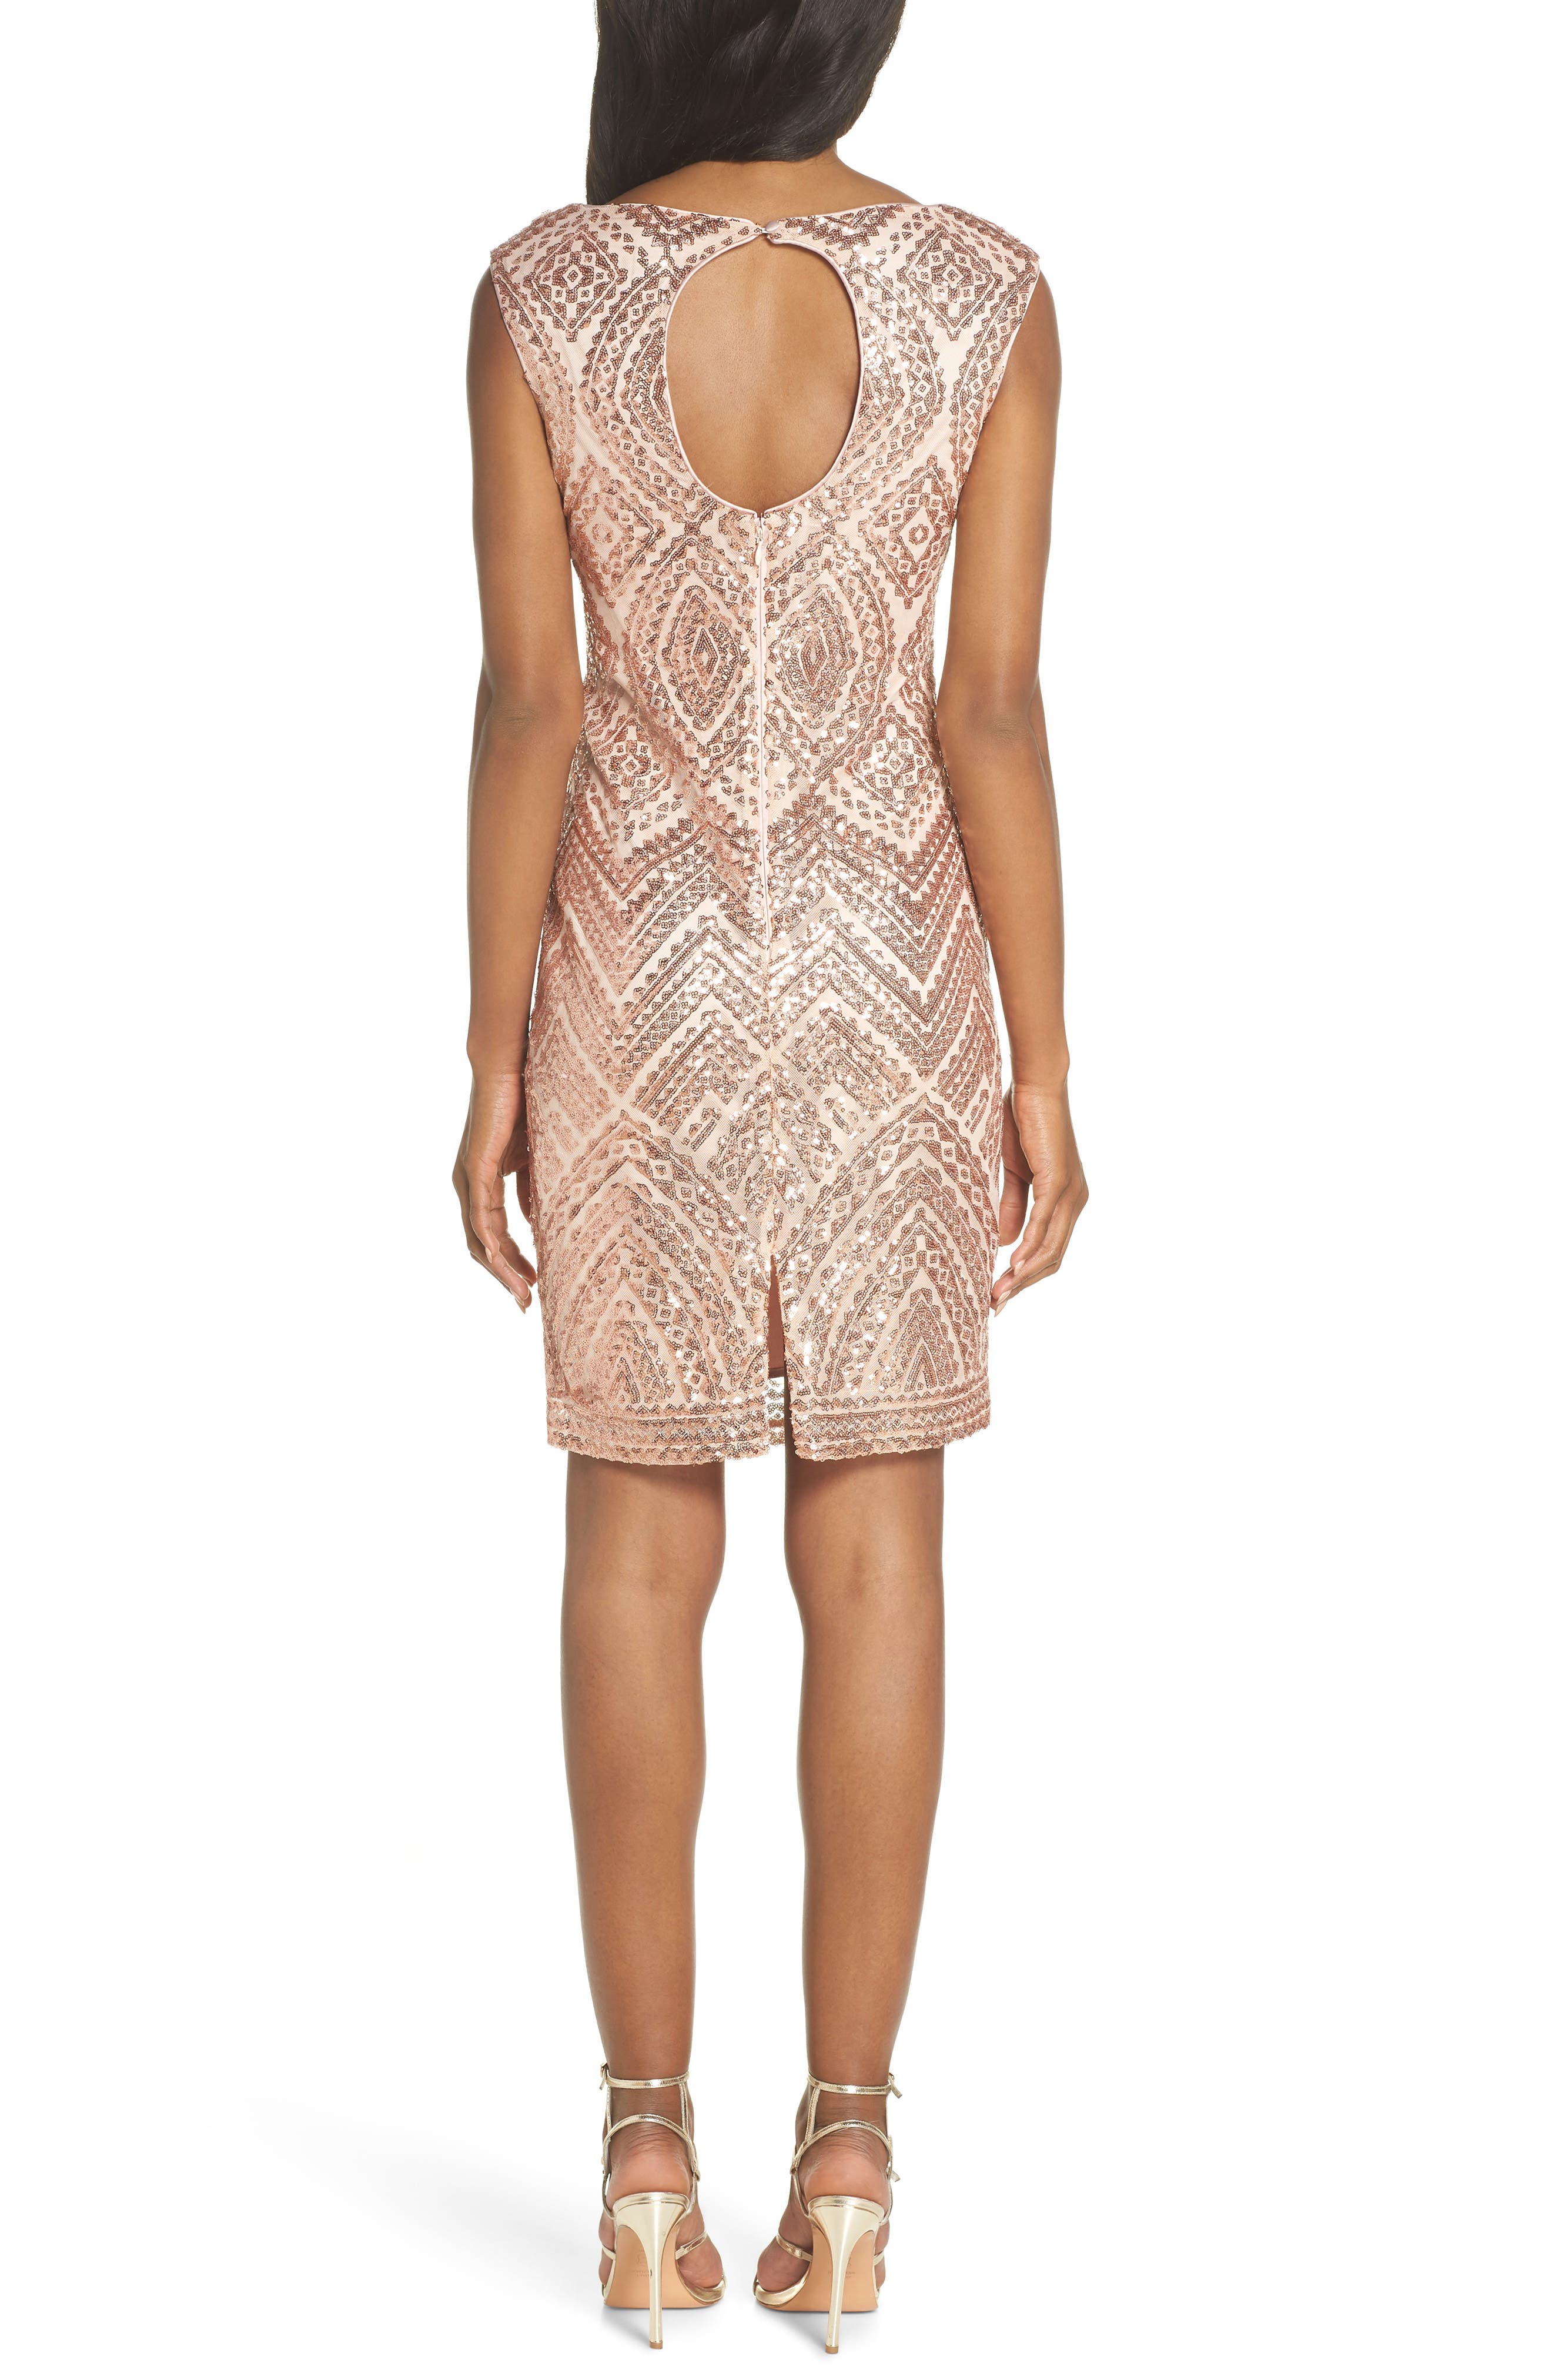 VINCE CAMUTO,                             Sequin Embellished Cocktail Dress,                             Alternate thumbnail 2, color,                             254